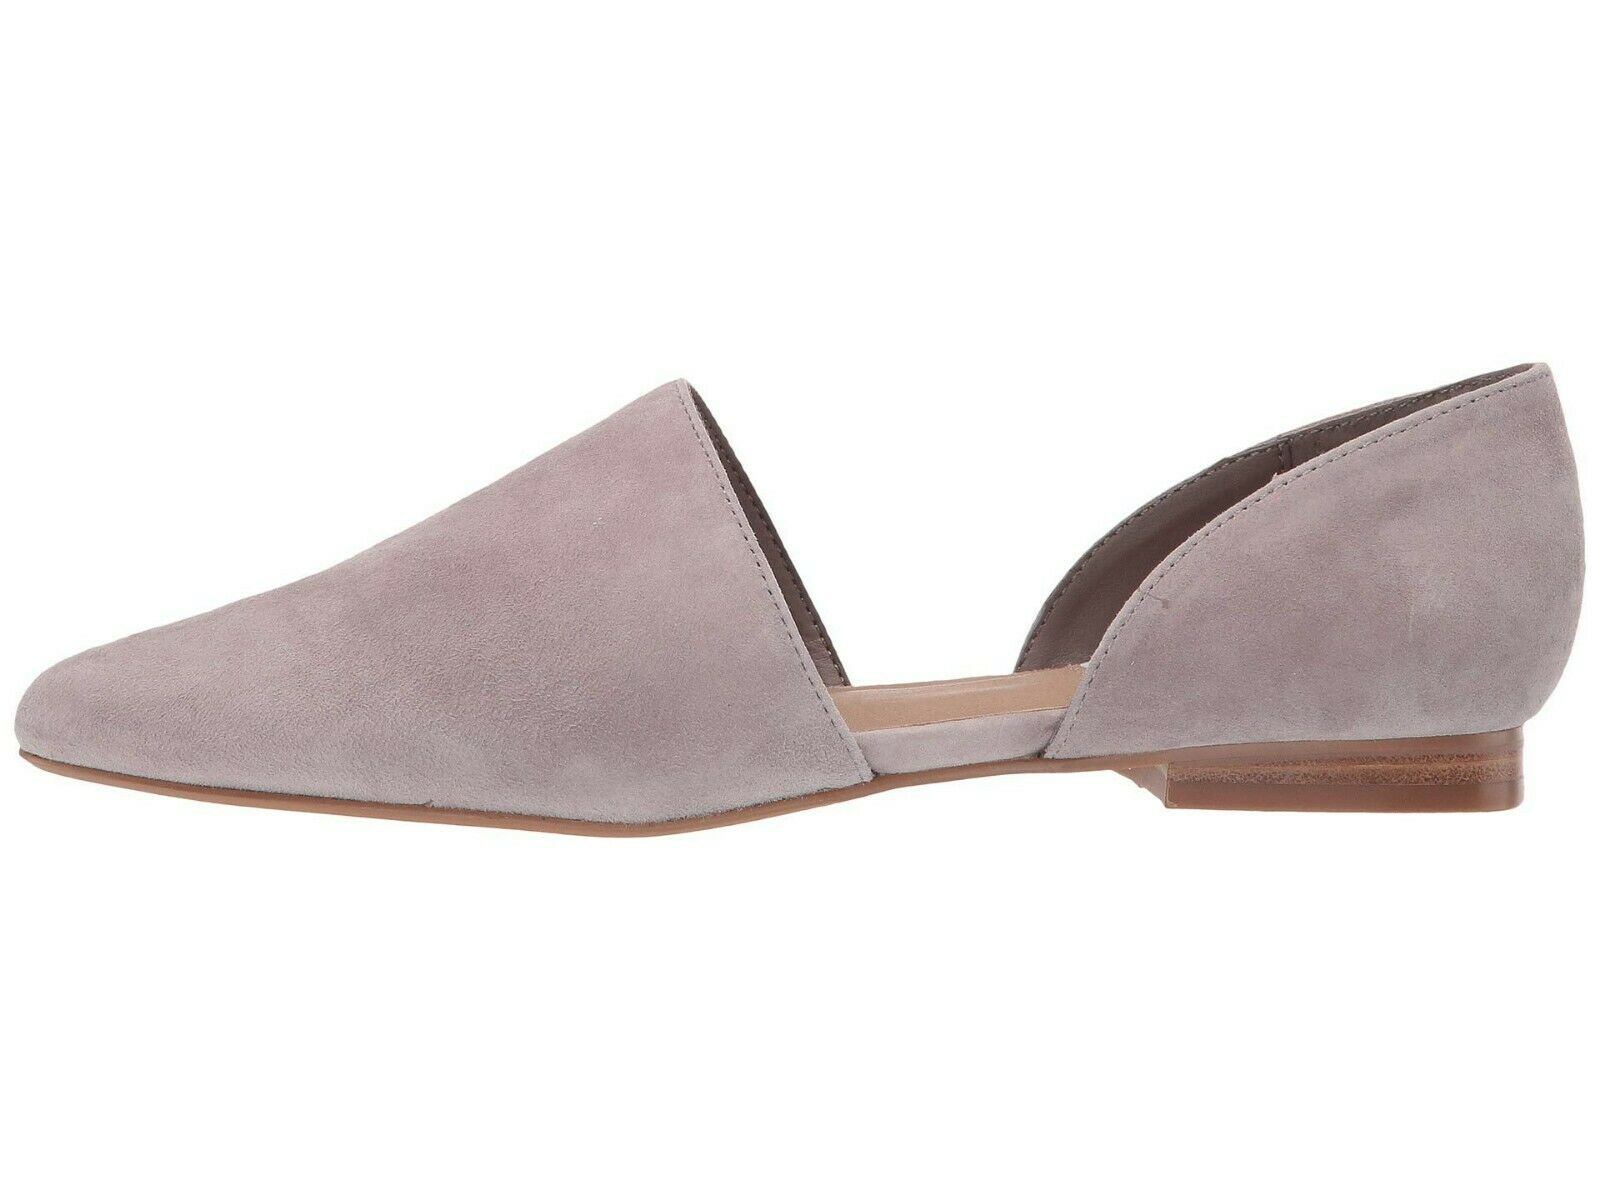 Steve Madden TALENT LIGHT grigio SUEDE Wouomo Slip On D'Orsay Loafers